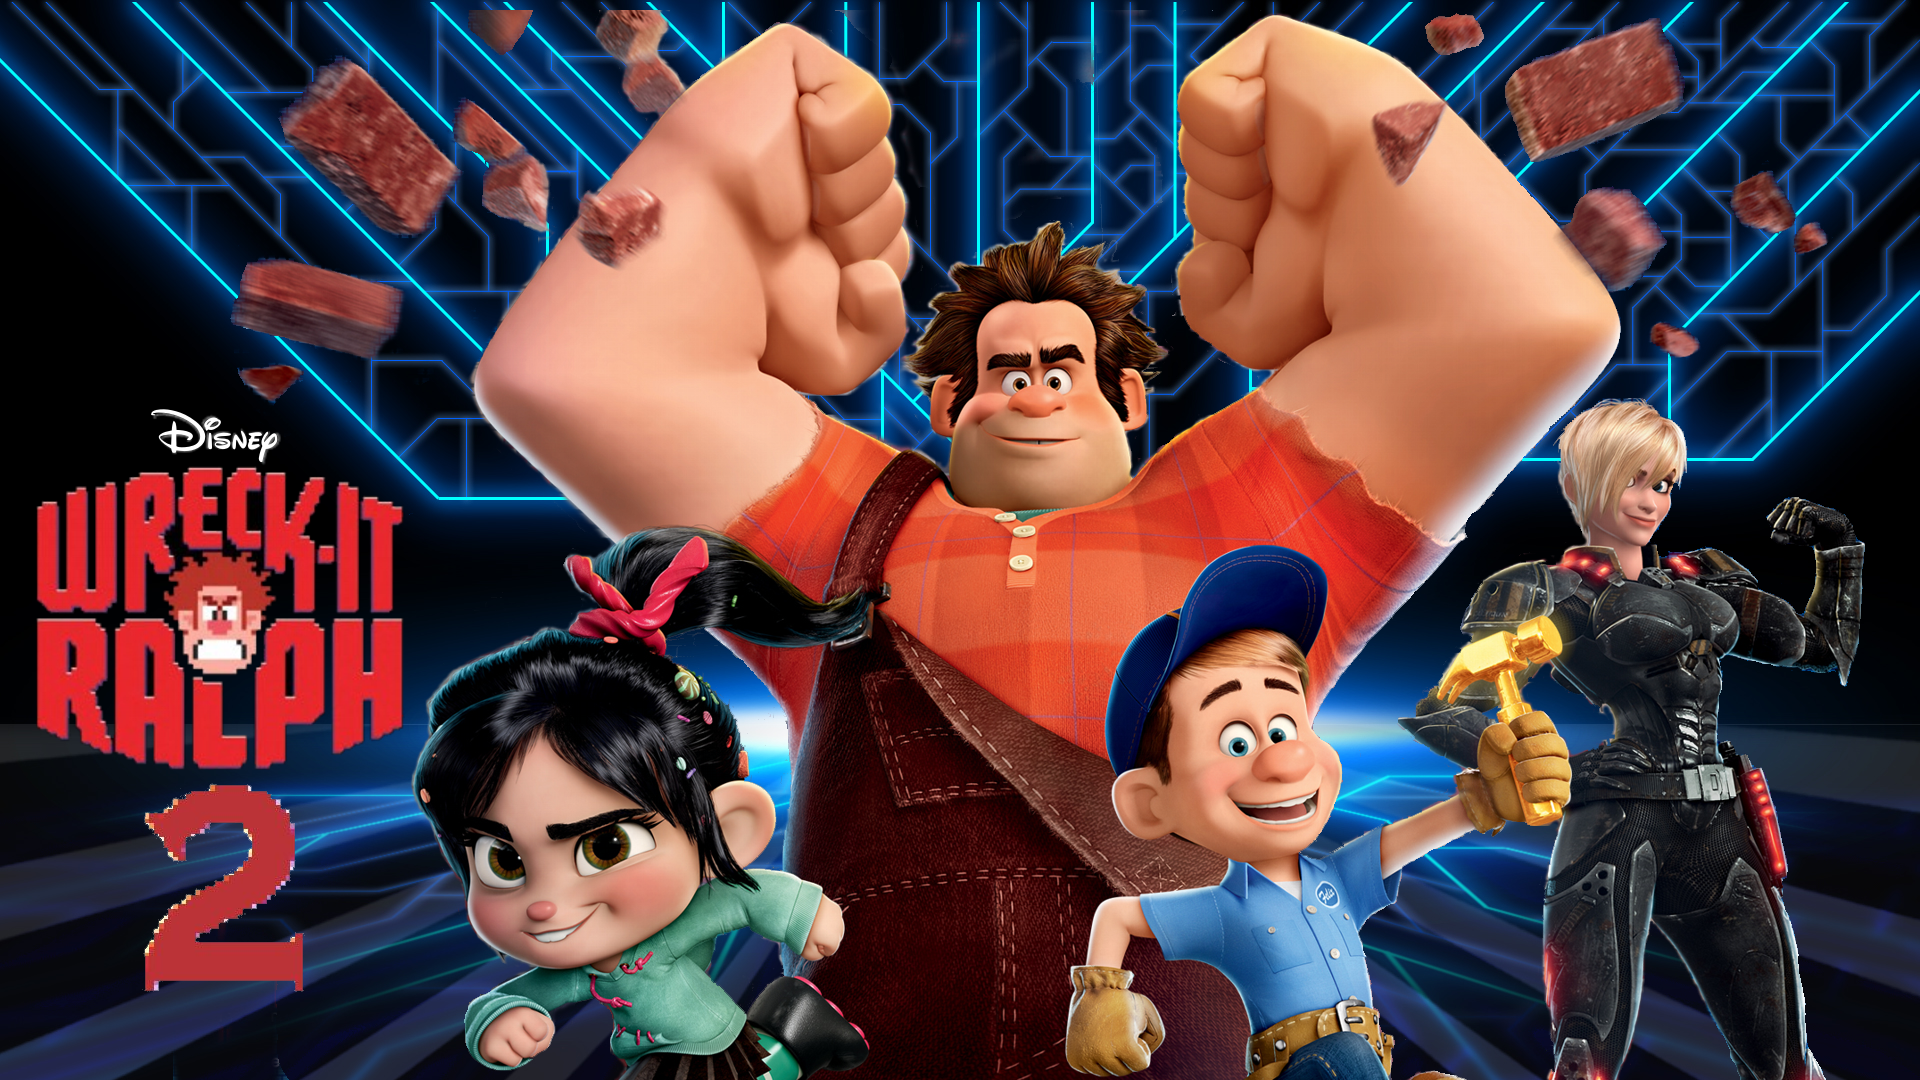 meet the cast of wreck it ralph full movie